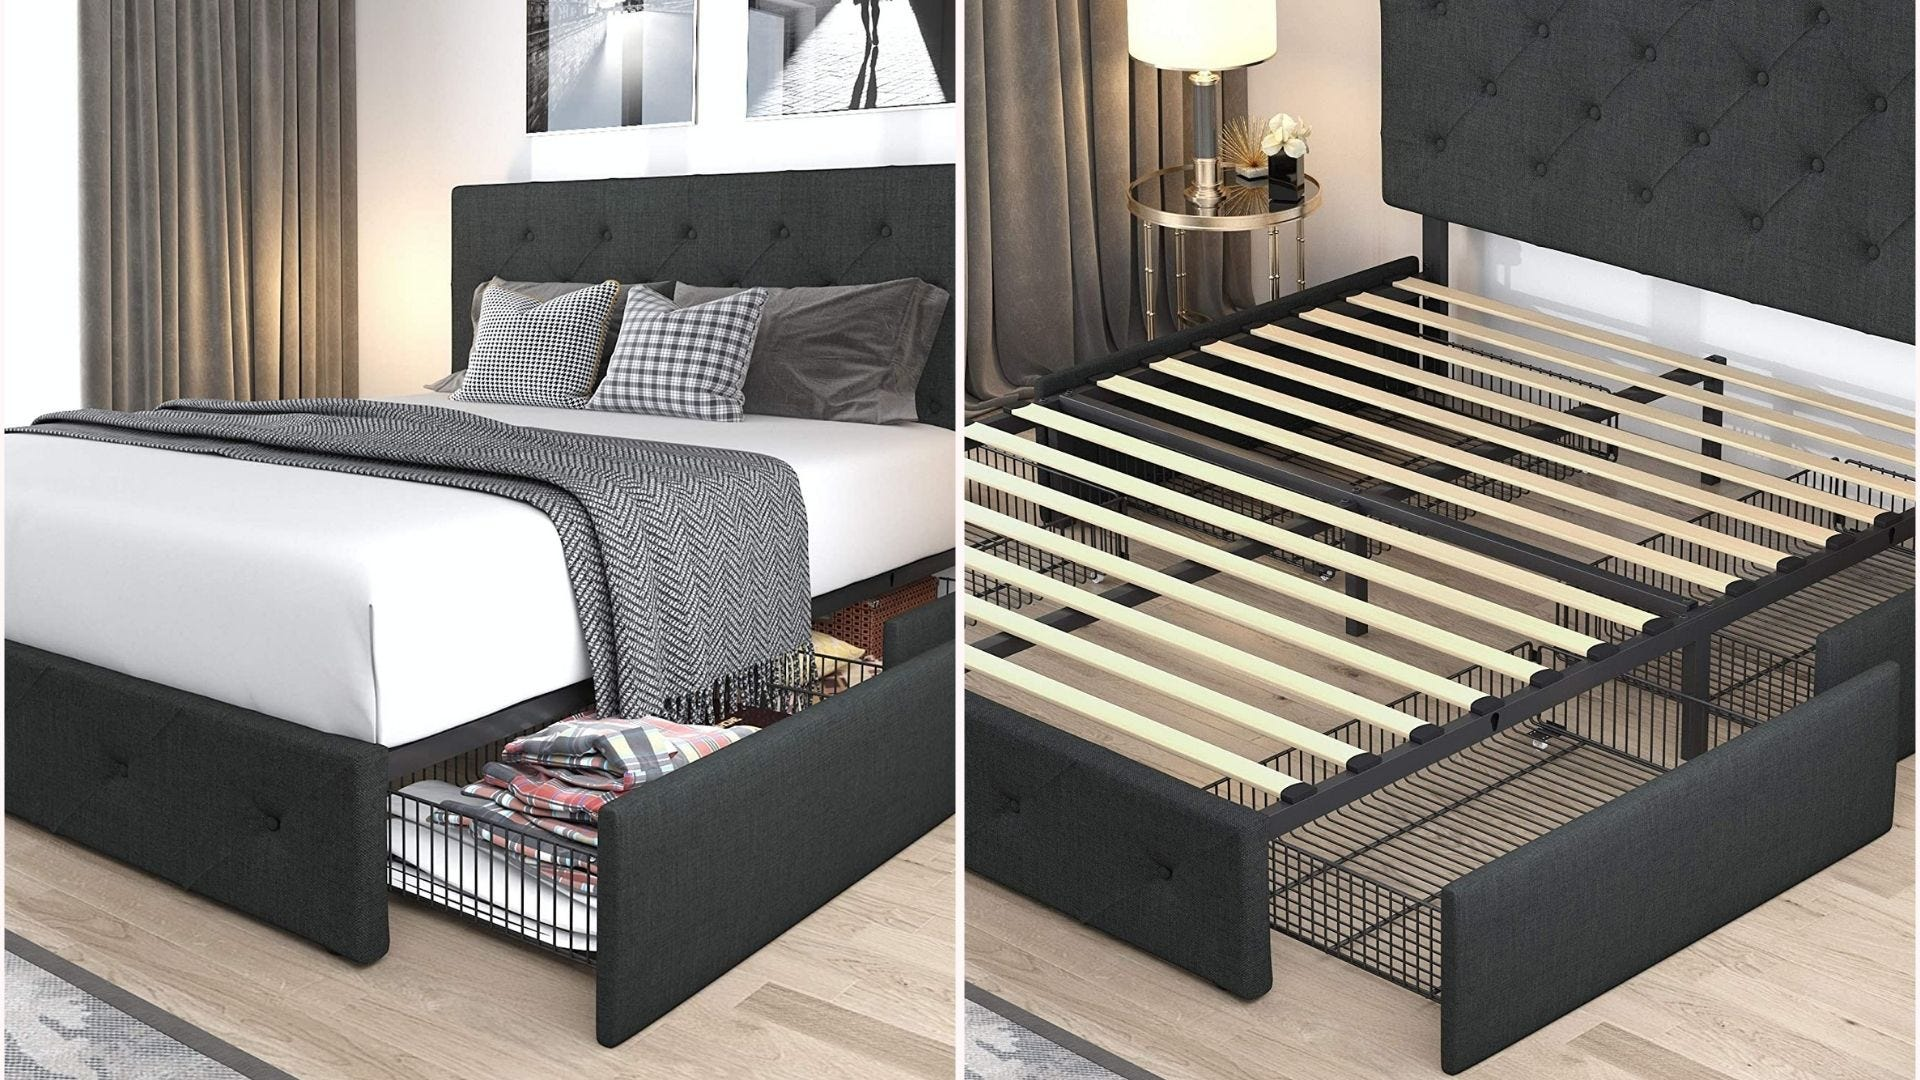 a platform bed frame with upholstered headboard and bottom drawers that fit underneath it